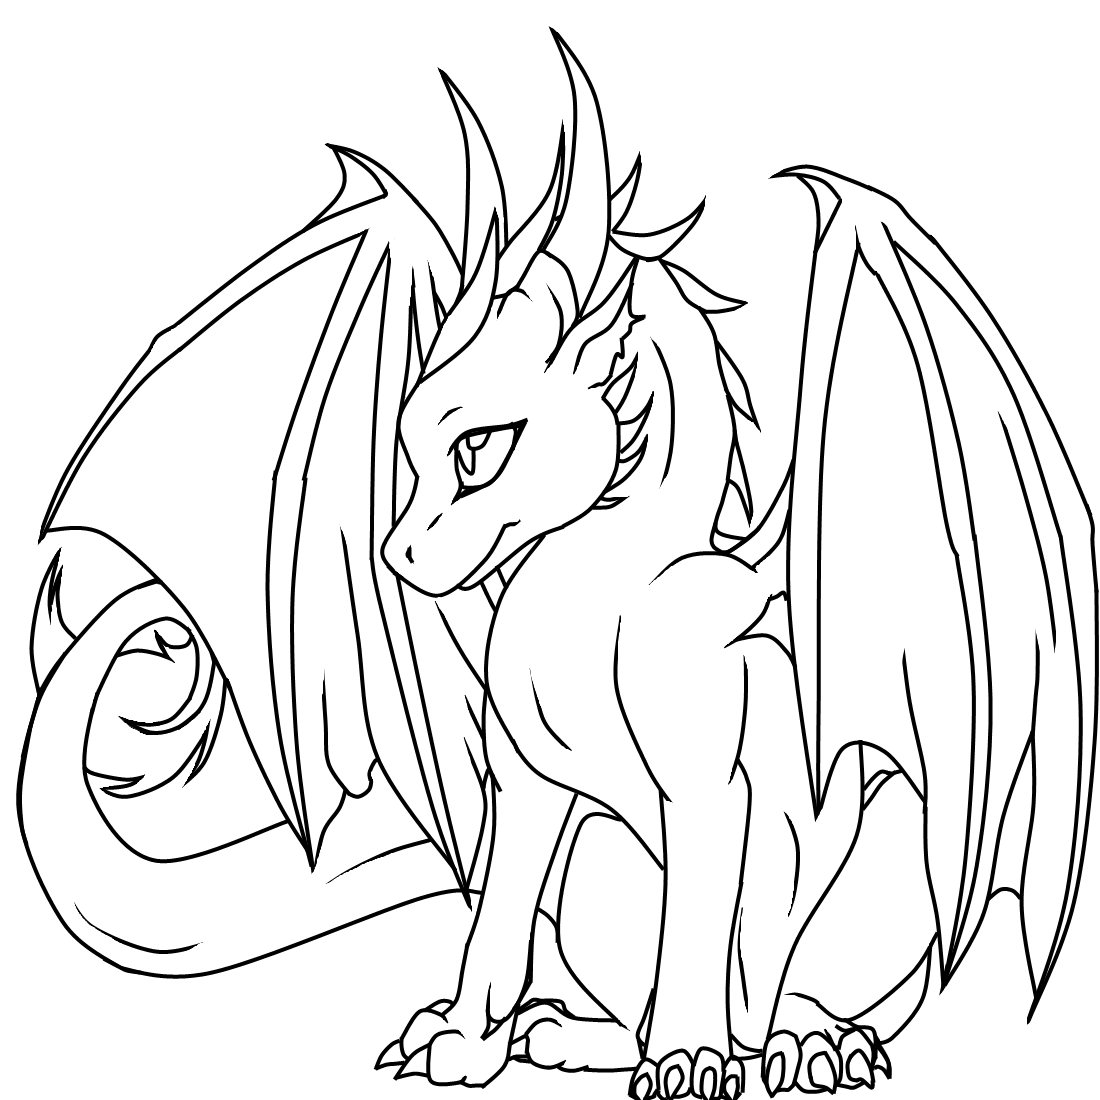 Free Dragon Coloring Pages at GetDrawings.com | Free for ...